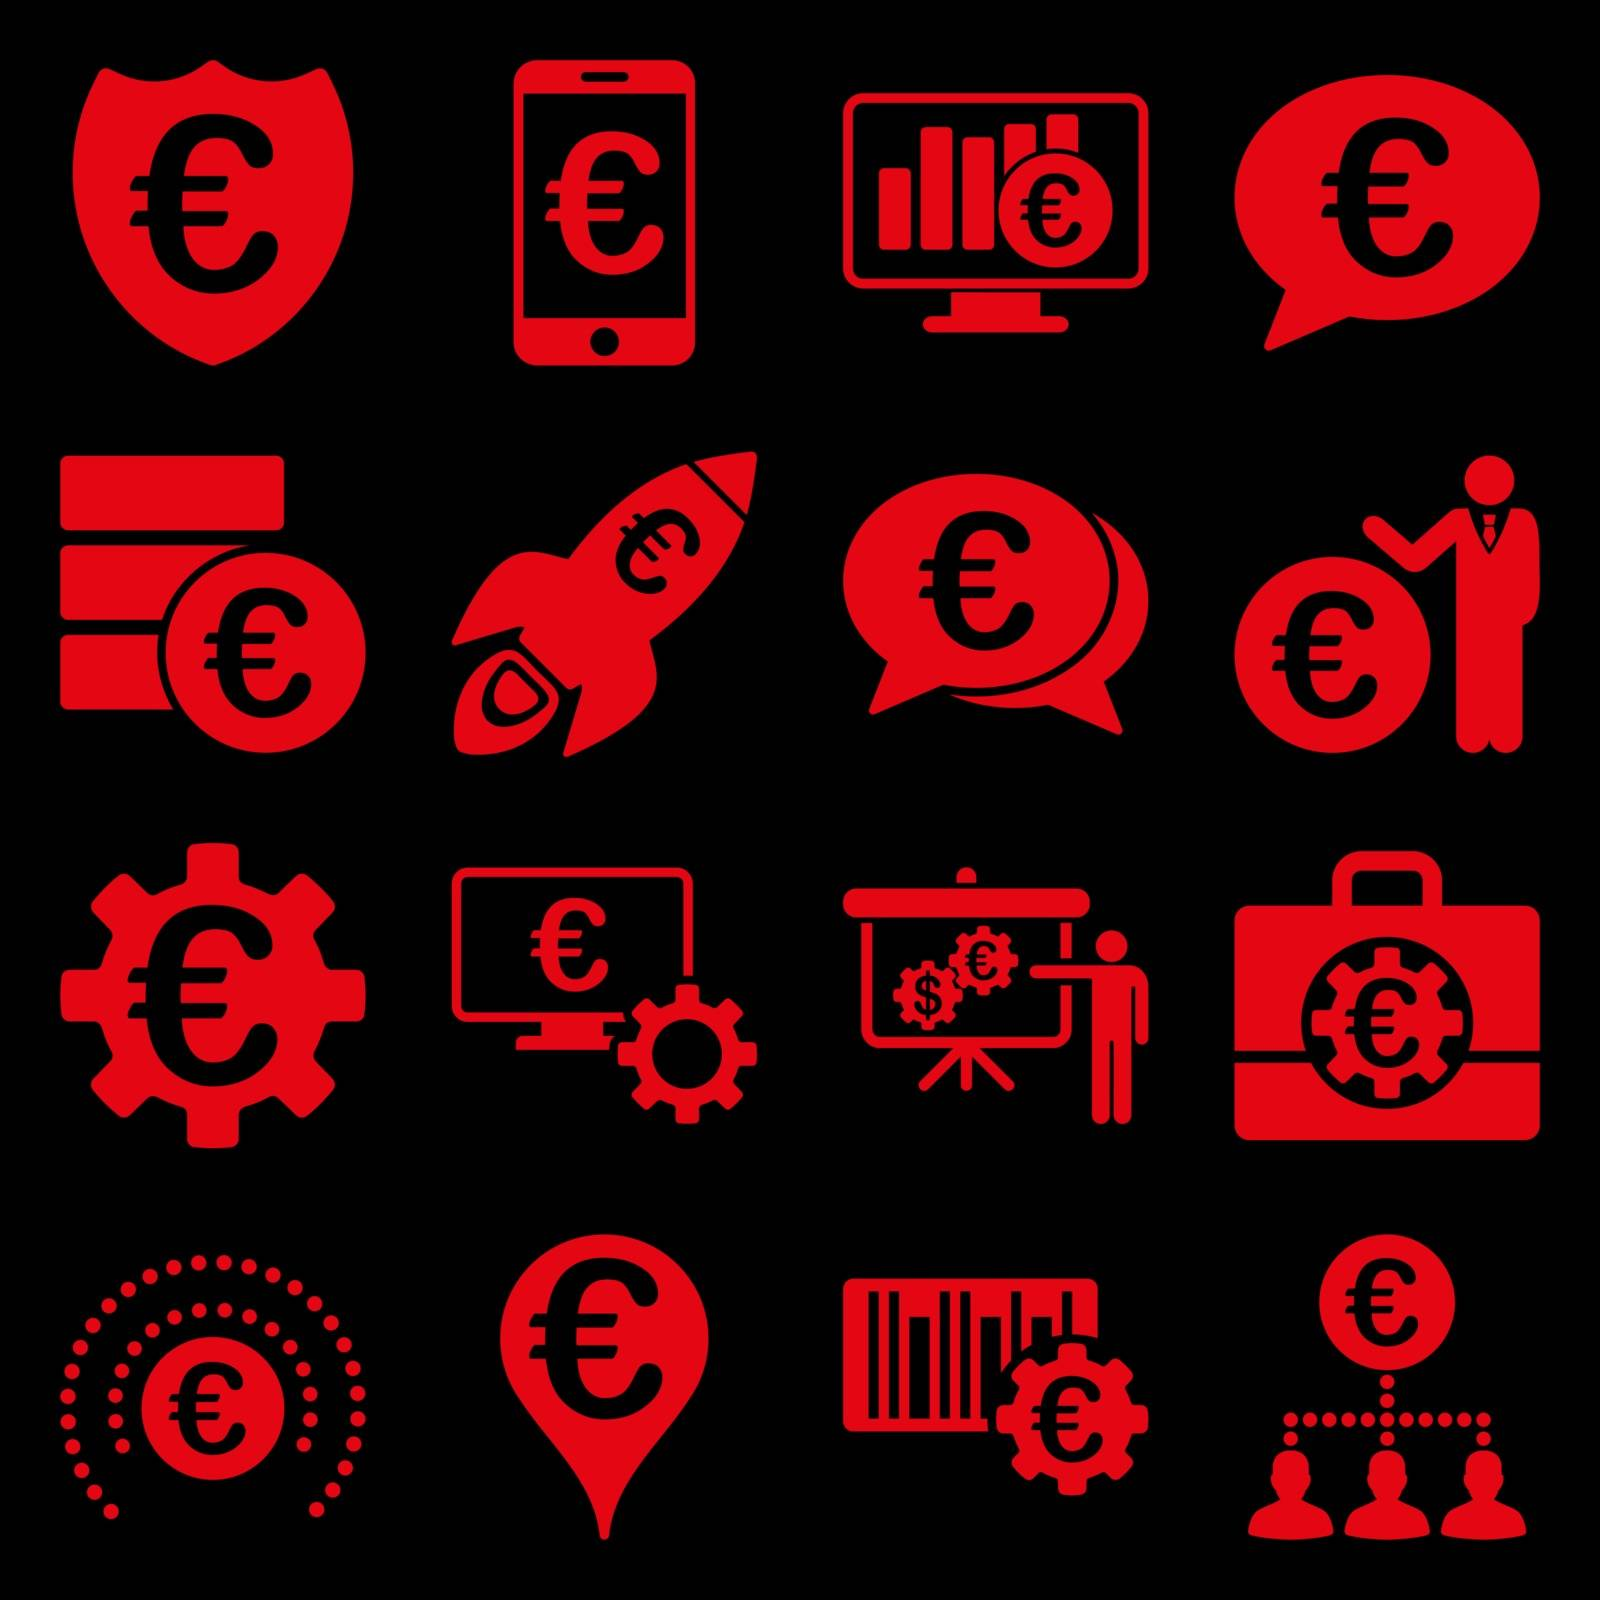 Euro banking business and service tools icons. These flat icons use red color. Images are isolated on a black background. Angles are rounded.